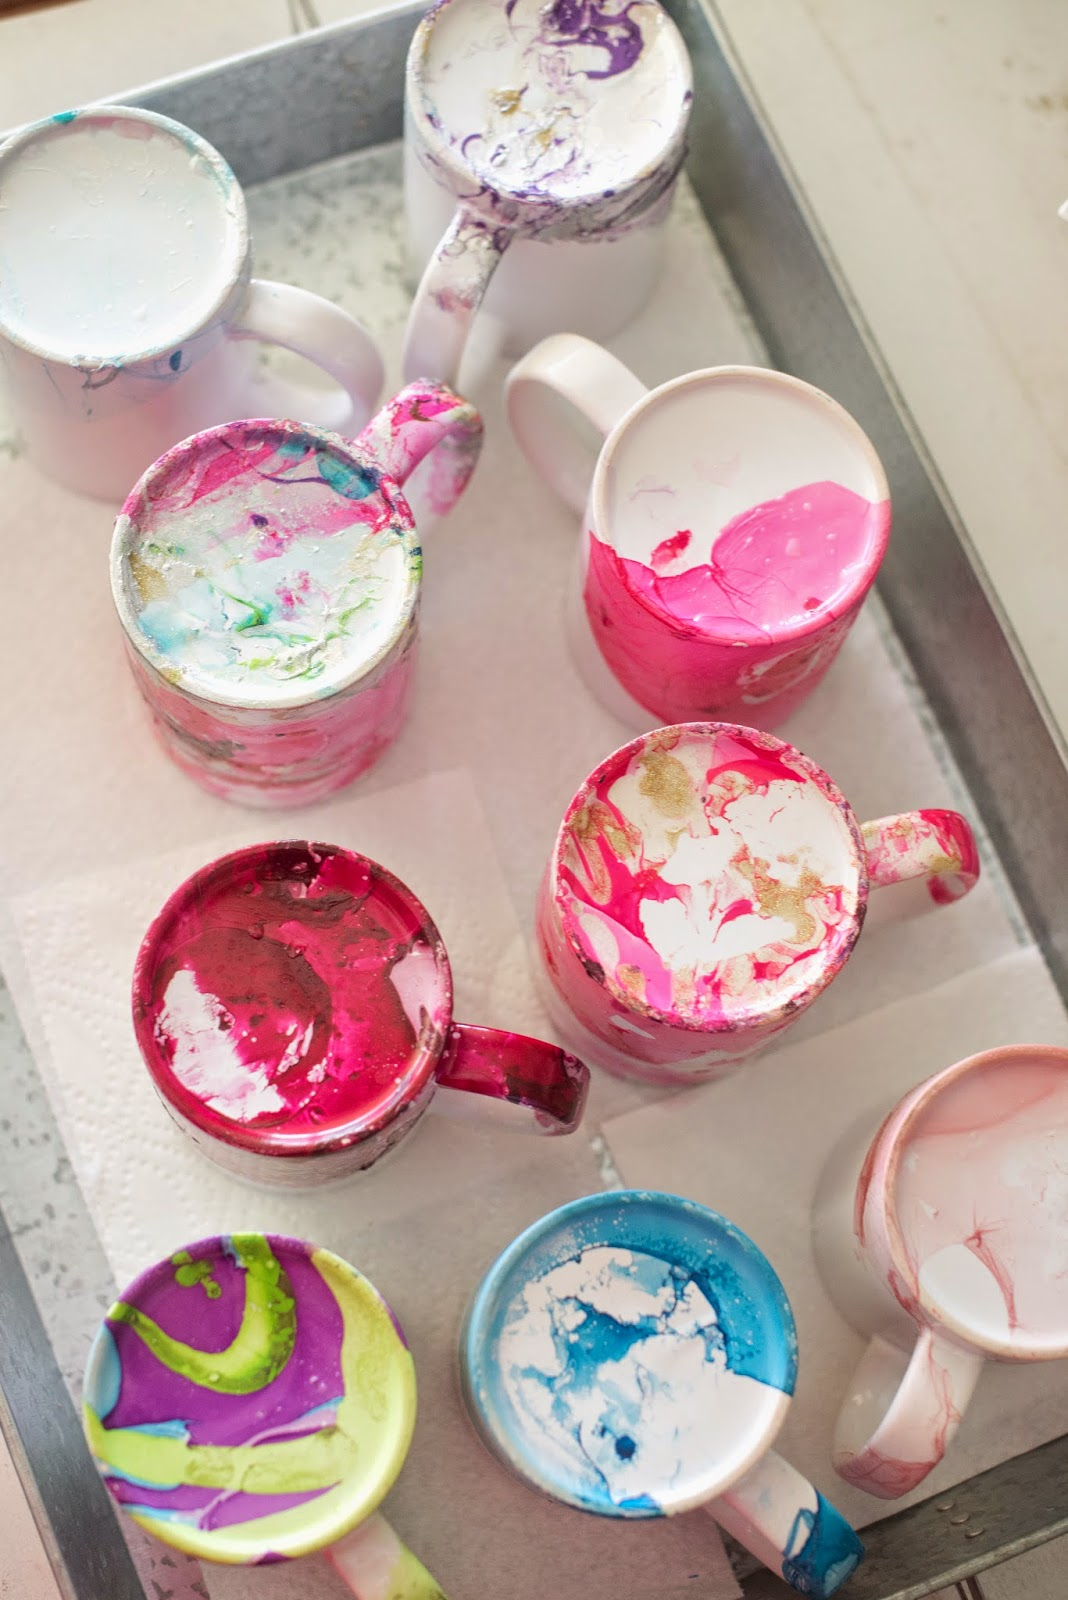 Domestic fashionista diy marbled nail polish coffee mugs each one is its own little work of art seeing them all together is so pretty to my eyes solutioingenieria Image collections